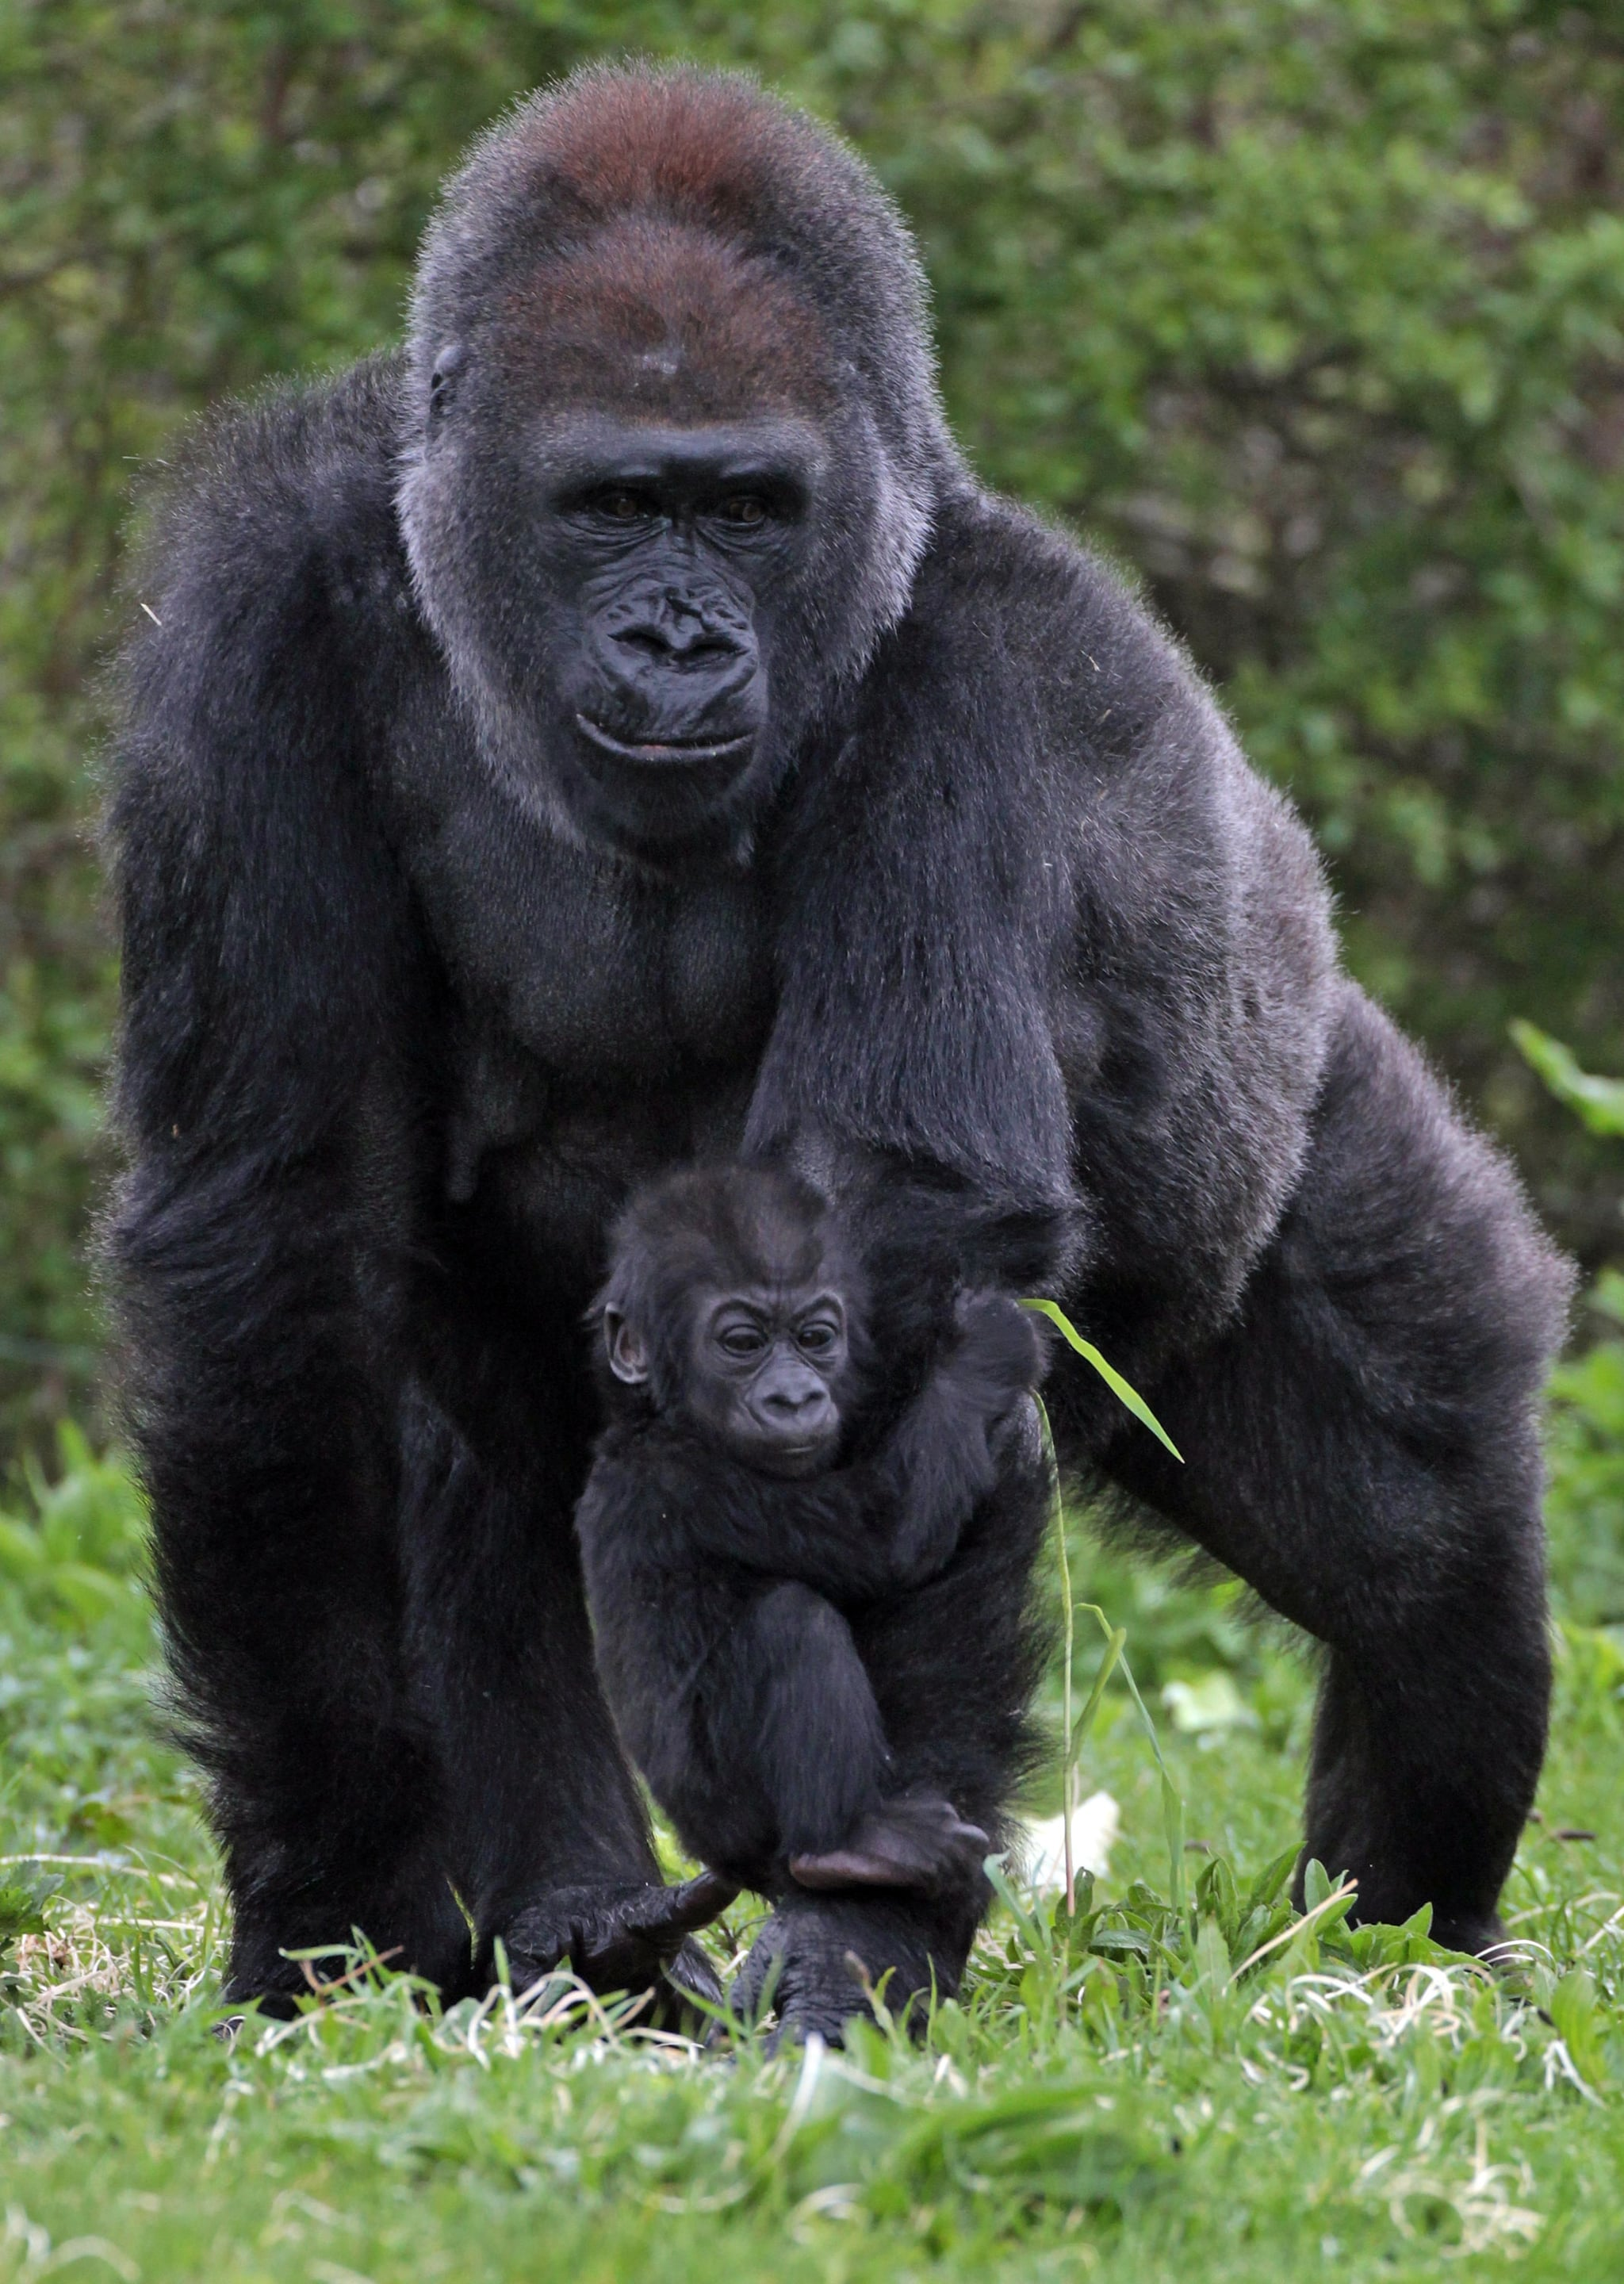 As a member of the smallest subspecies of gorilla, this baby western lowland gorilla will grow to be about five to six feet tall.